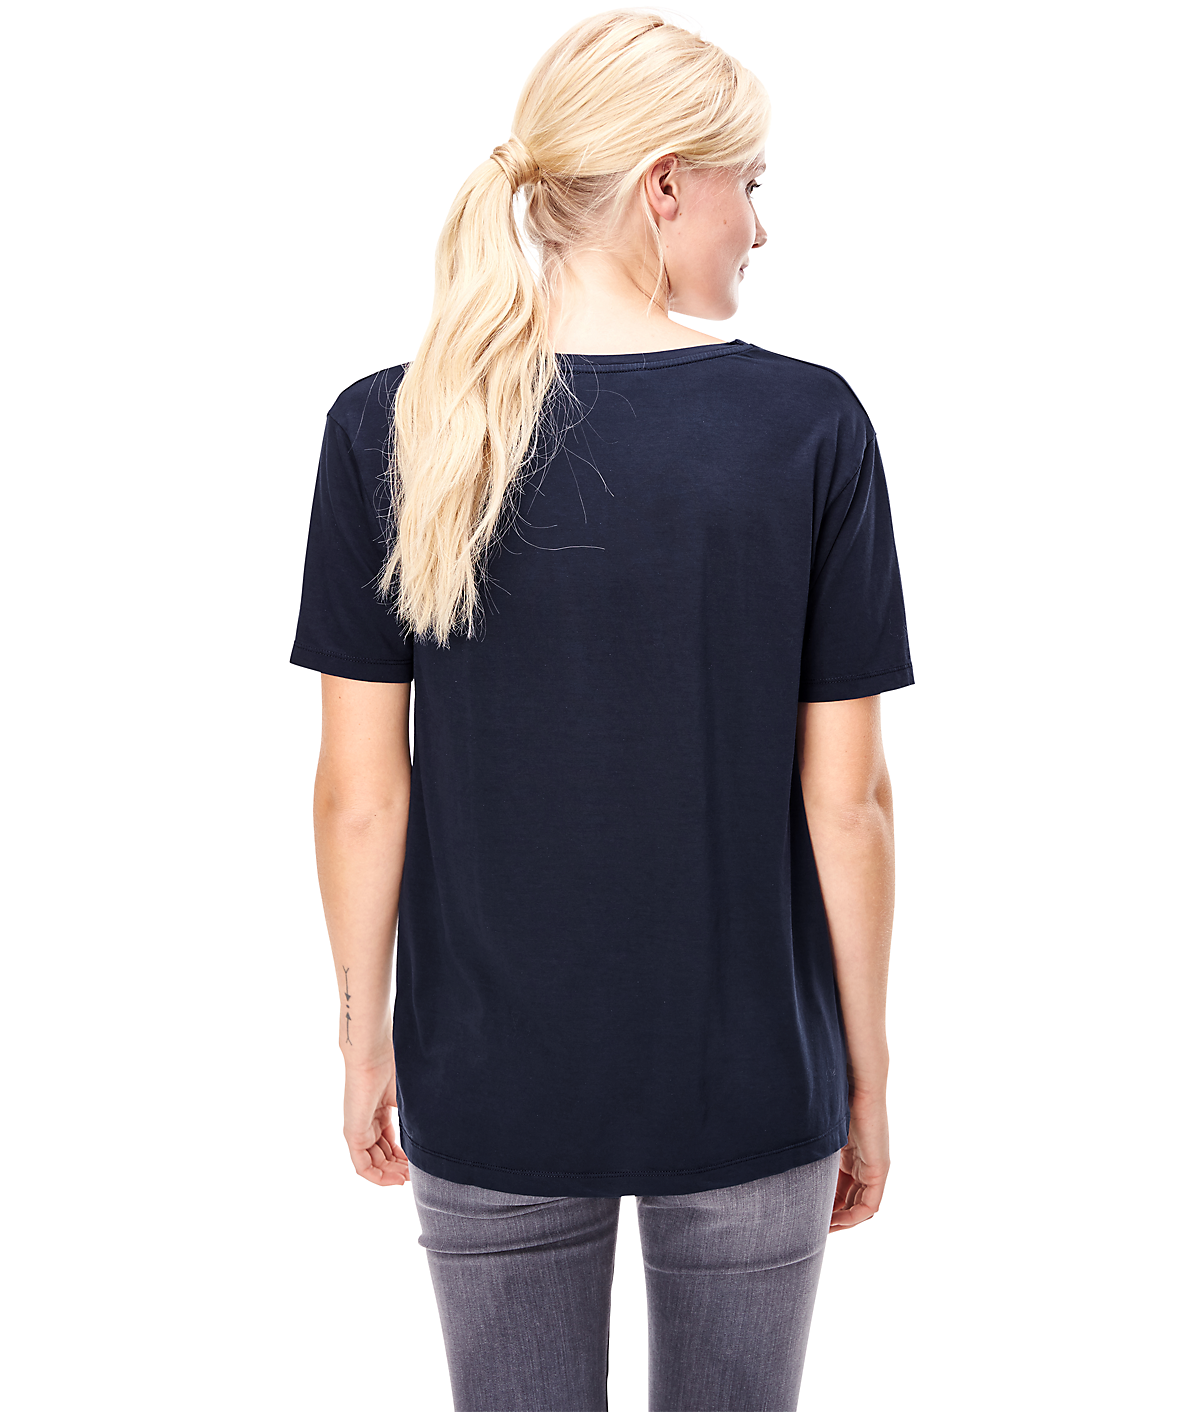 T-shirt W1161200 from liebeskind